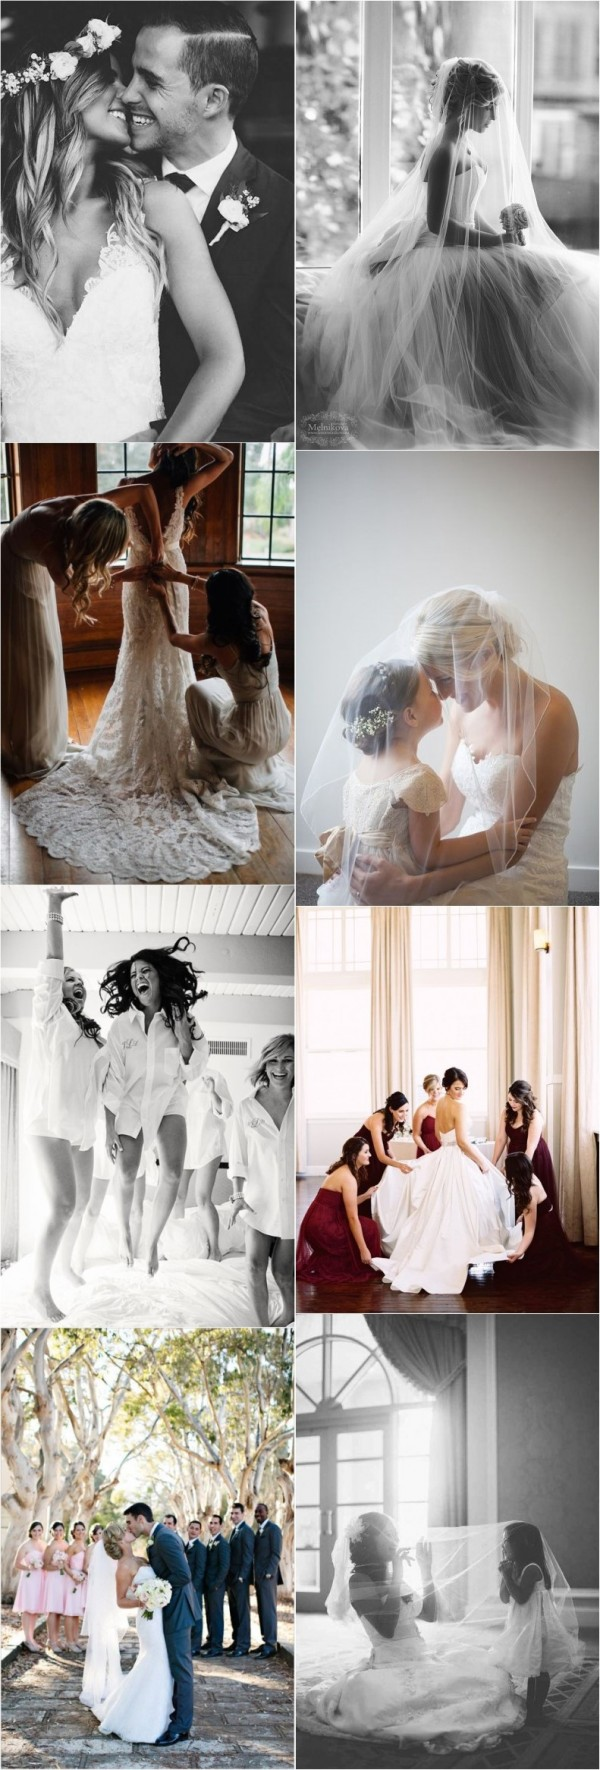 Wedding Photography Ideas Every Bride Should Have